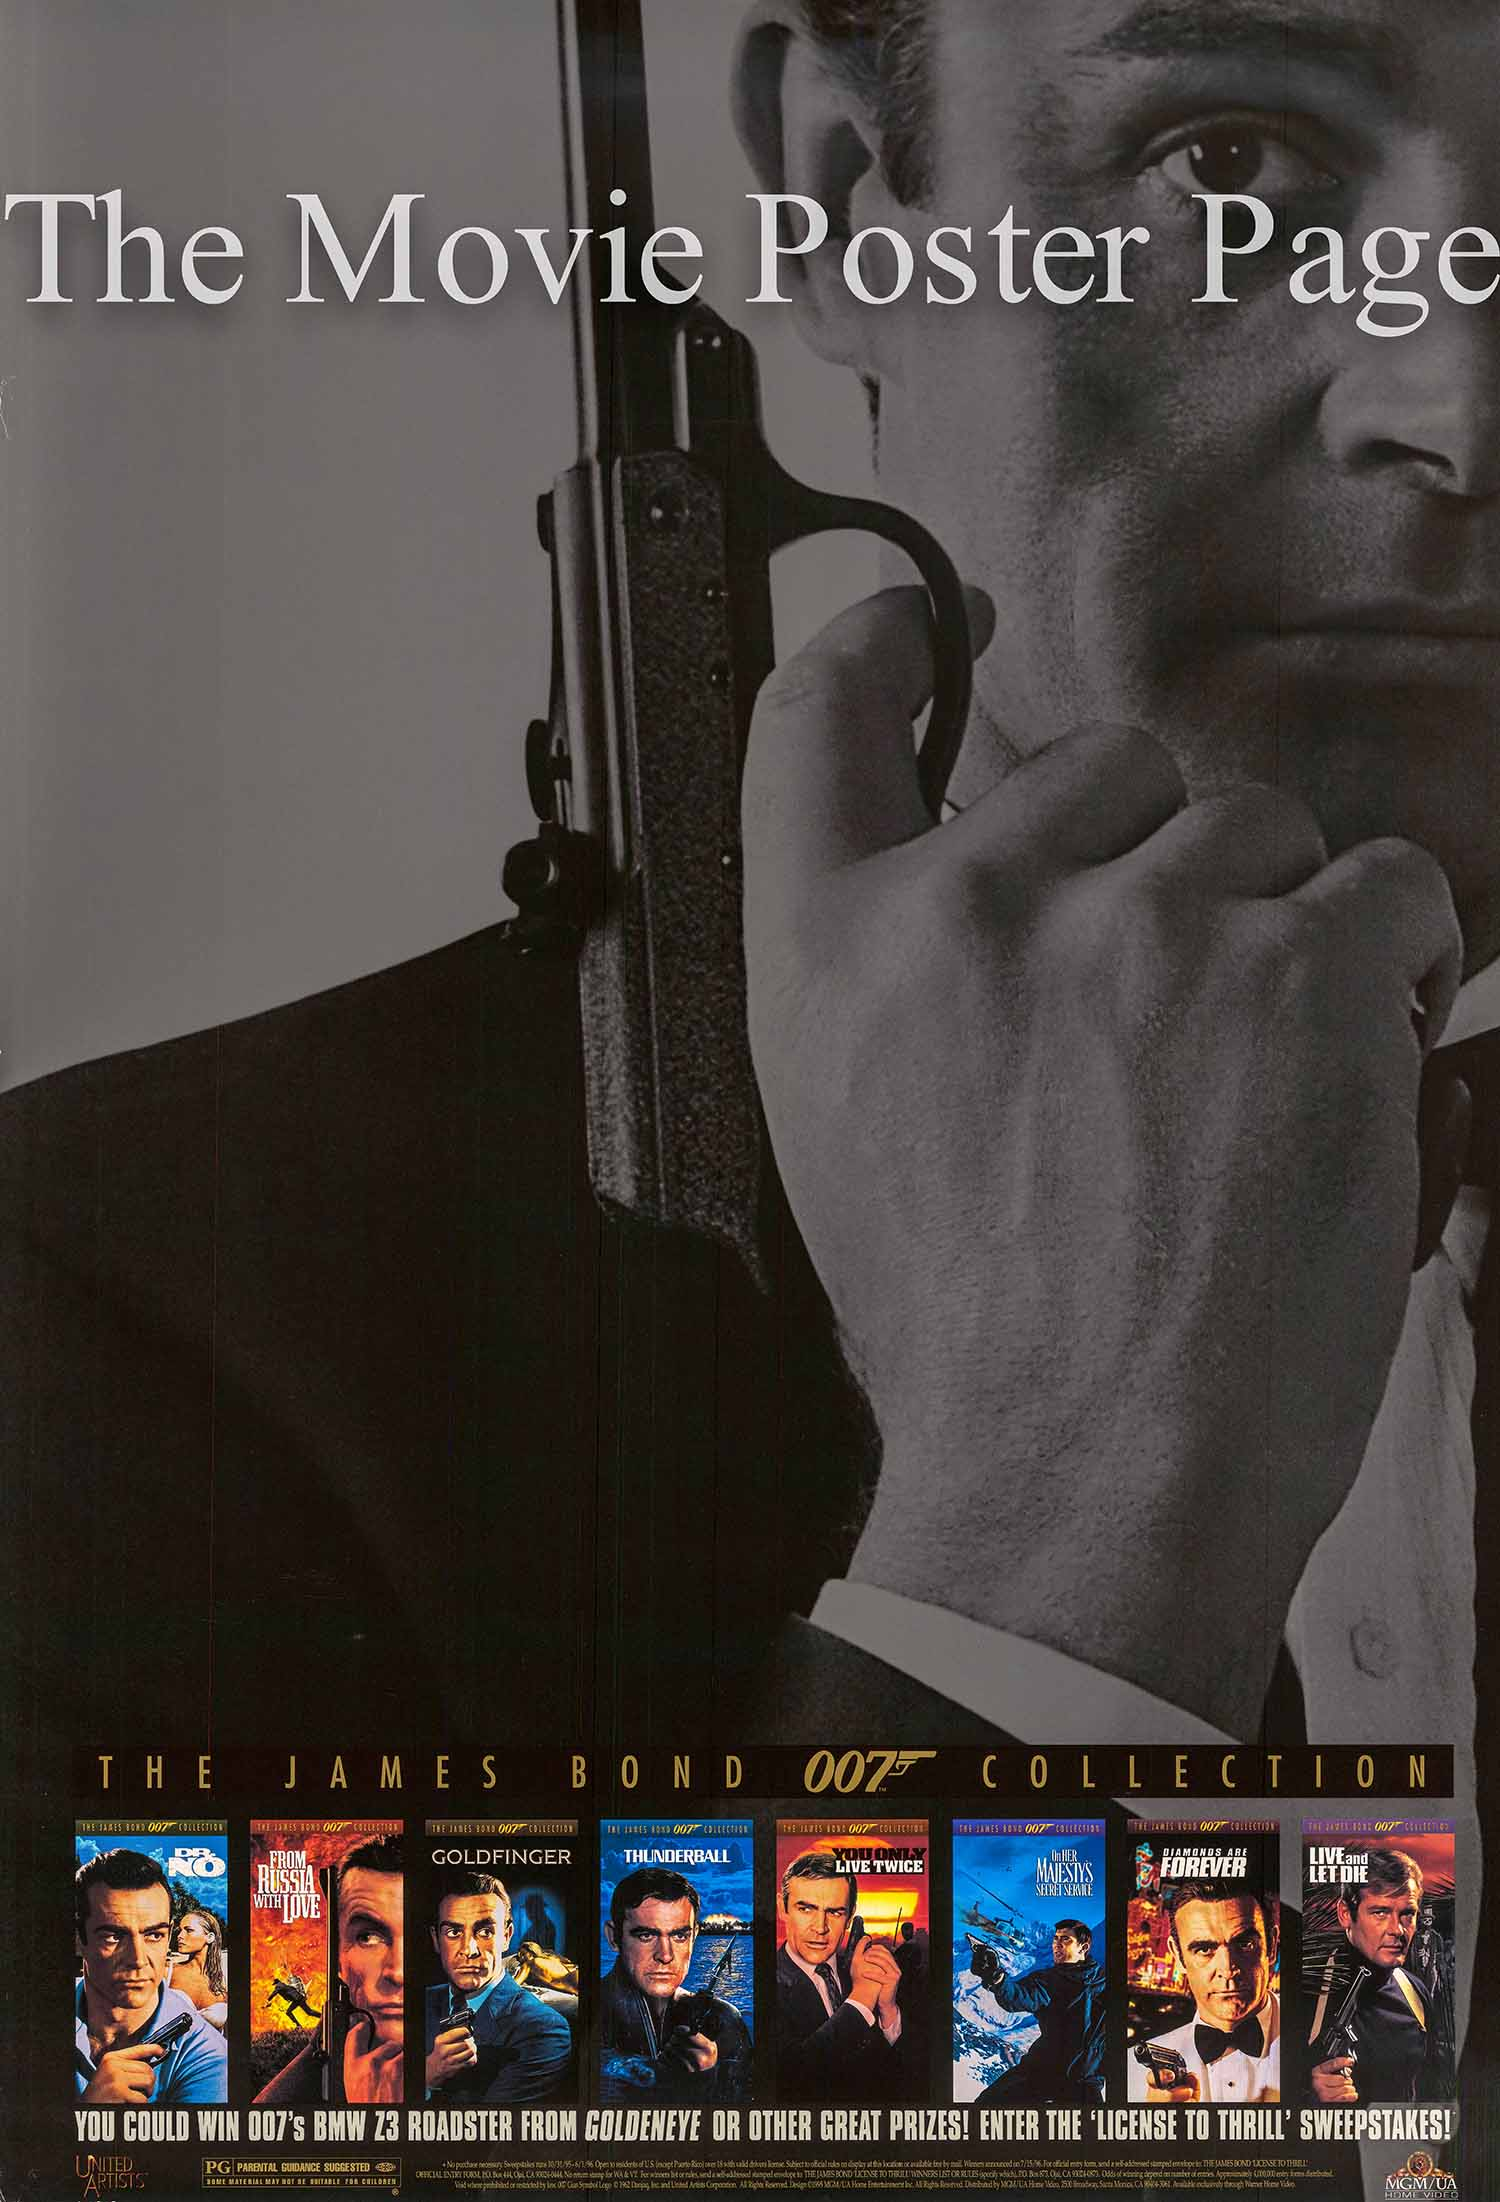 Pictured is a video poster for a collection of James Bond films starring Sean Connery.